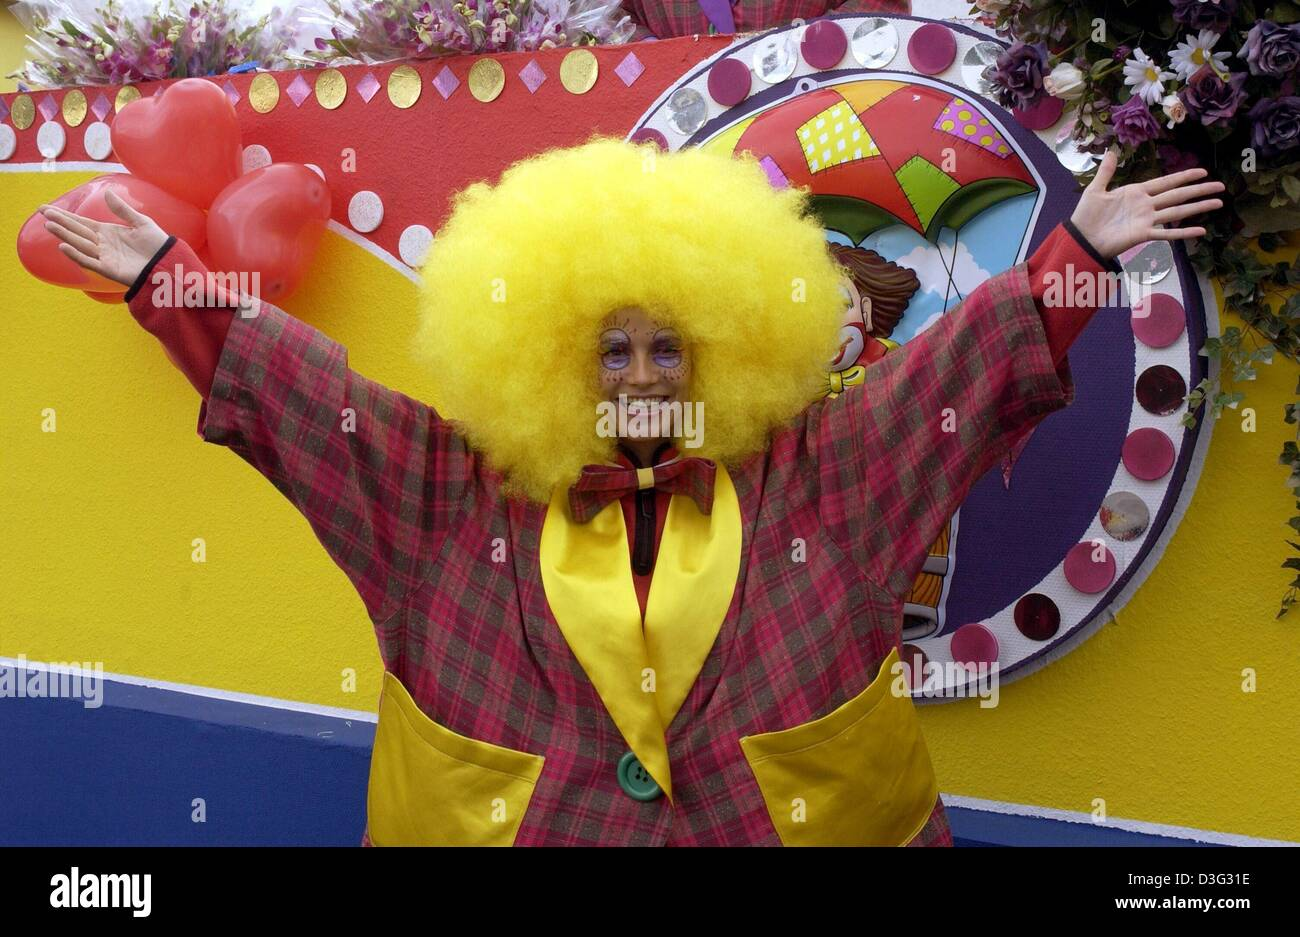 (dpa) - German top model Heidi Klum wears a carnival costume with a yellow wig and gestures a carnival greeting - Stock Image